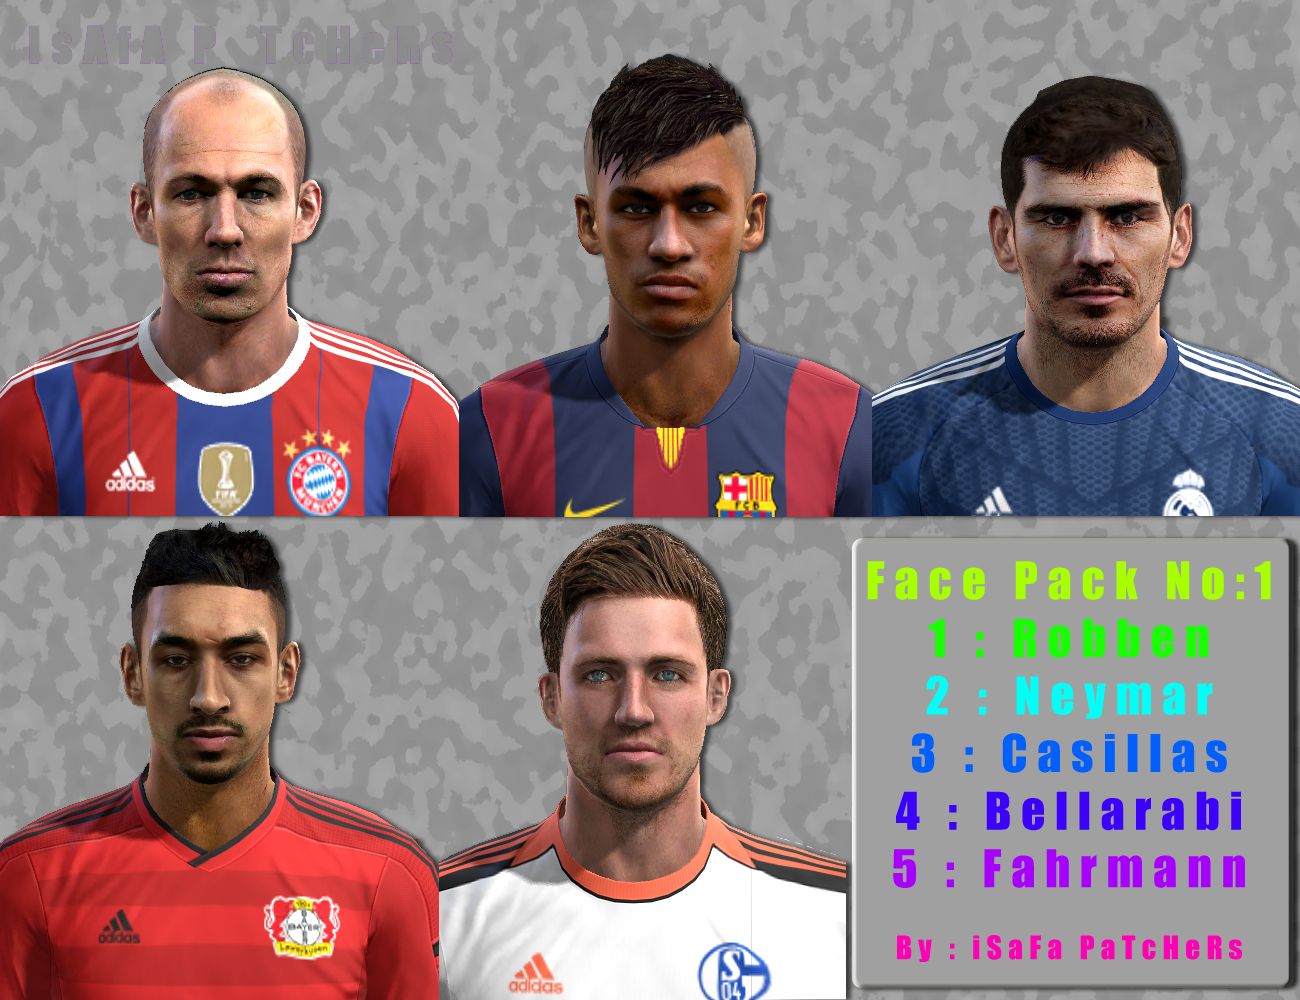 PES 2013 International Facepack V1 by IsAfA Patchers